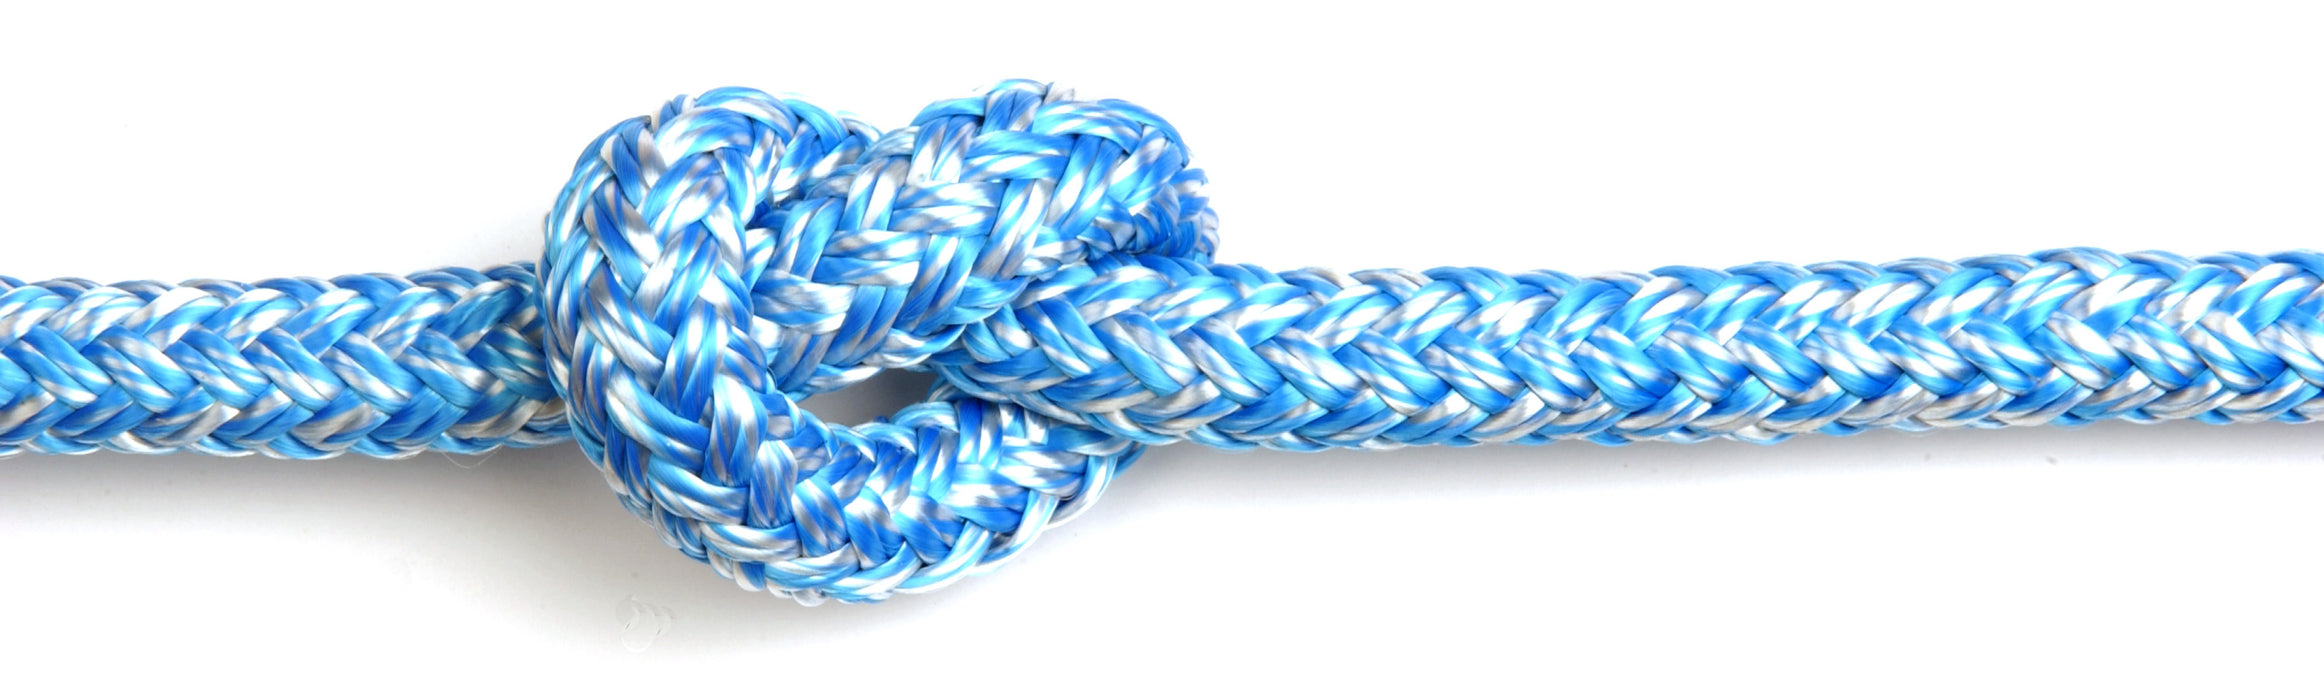 Kingfisher Braid-on-braid polyester melanges rope - Dinghy Shack